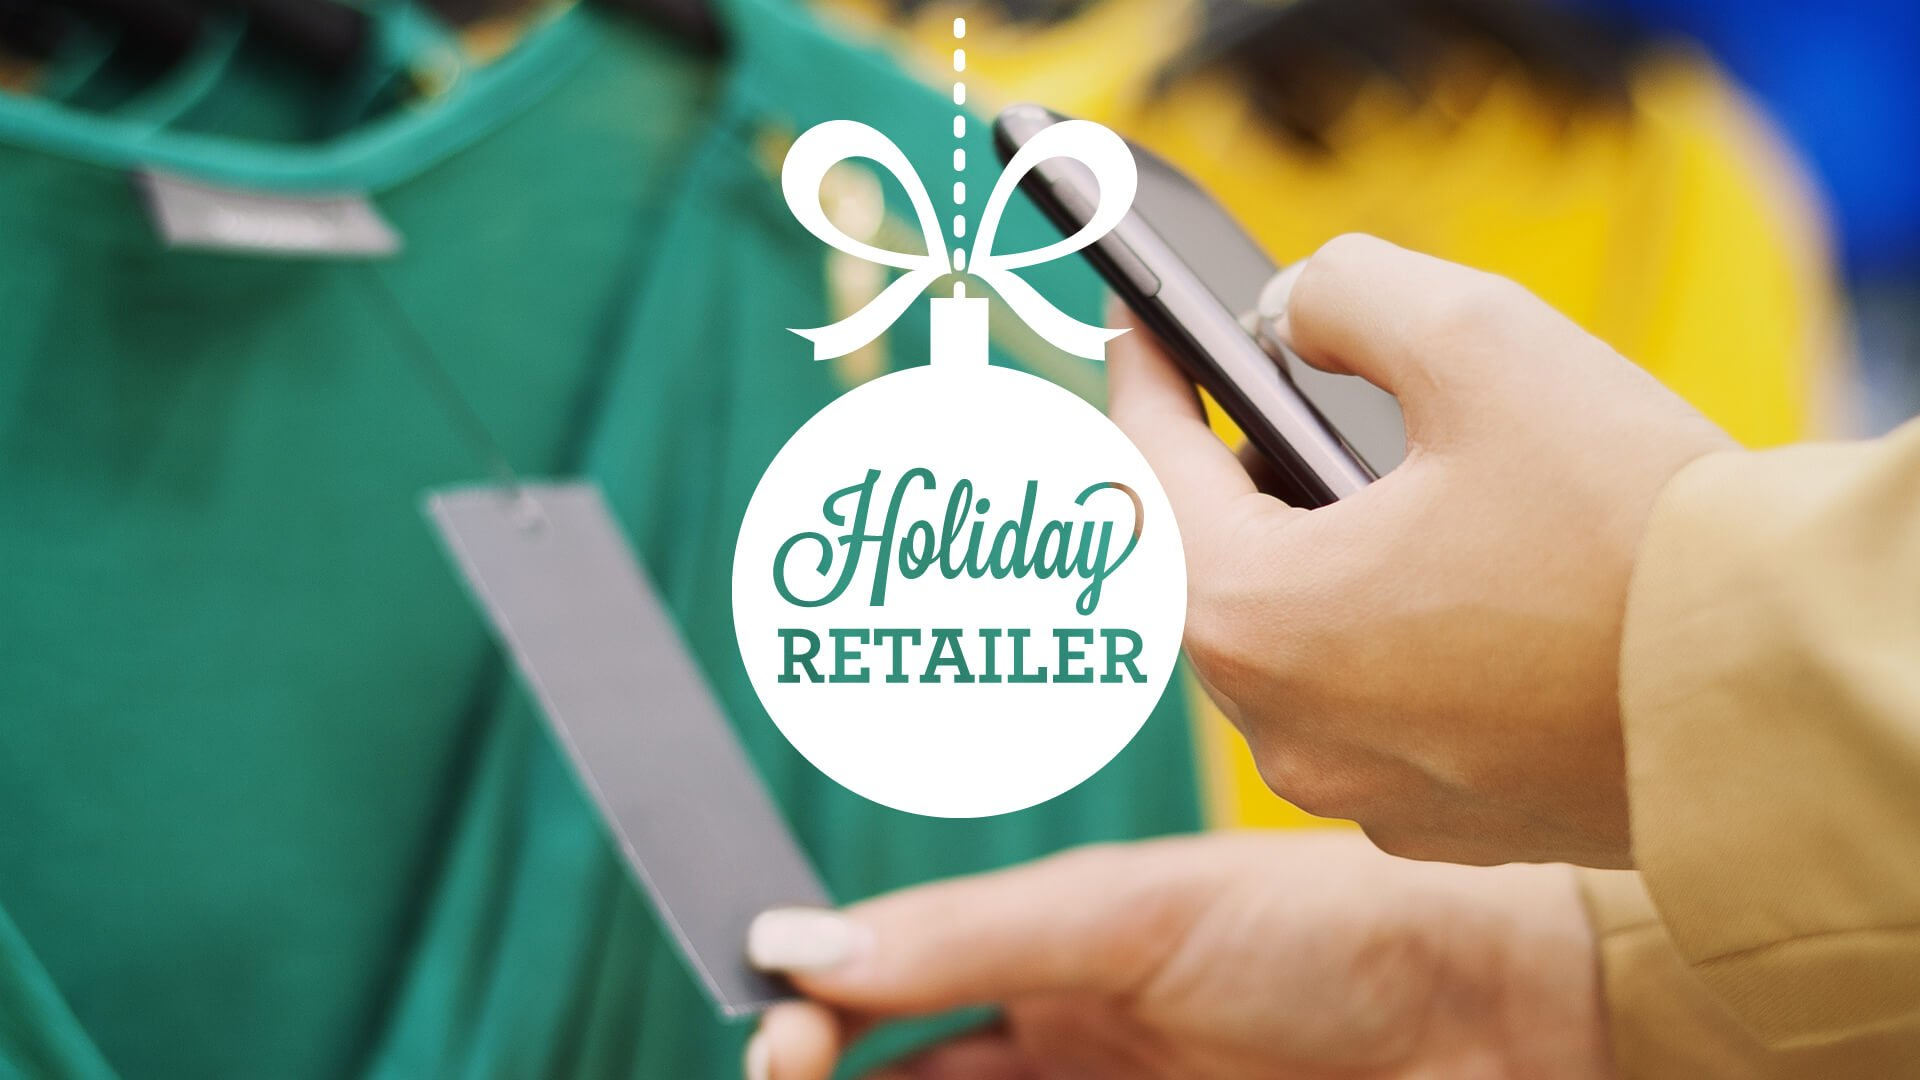 More than 1/3 of shoppers plan to start holiday shopping before Black Friday [report]